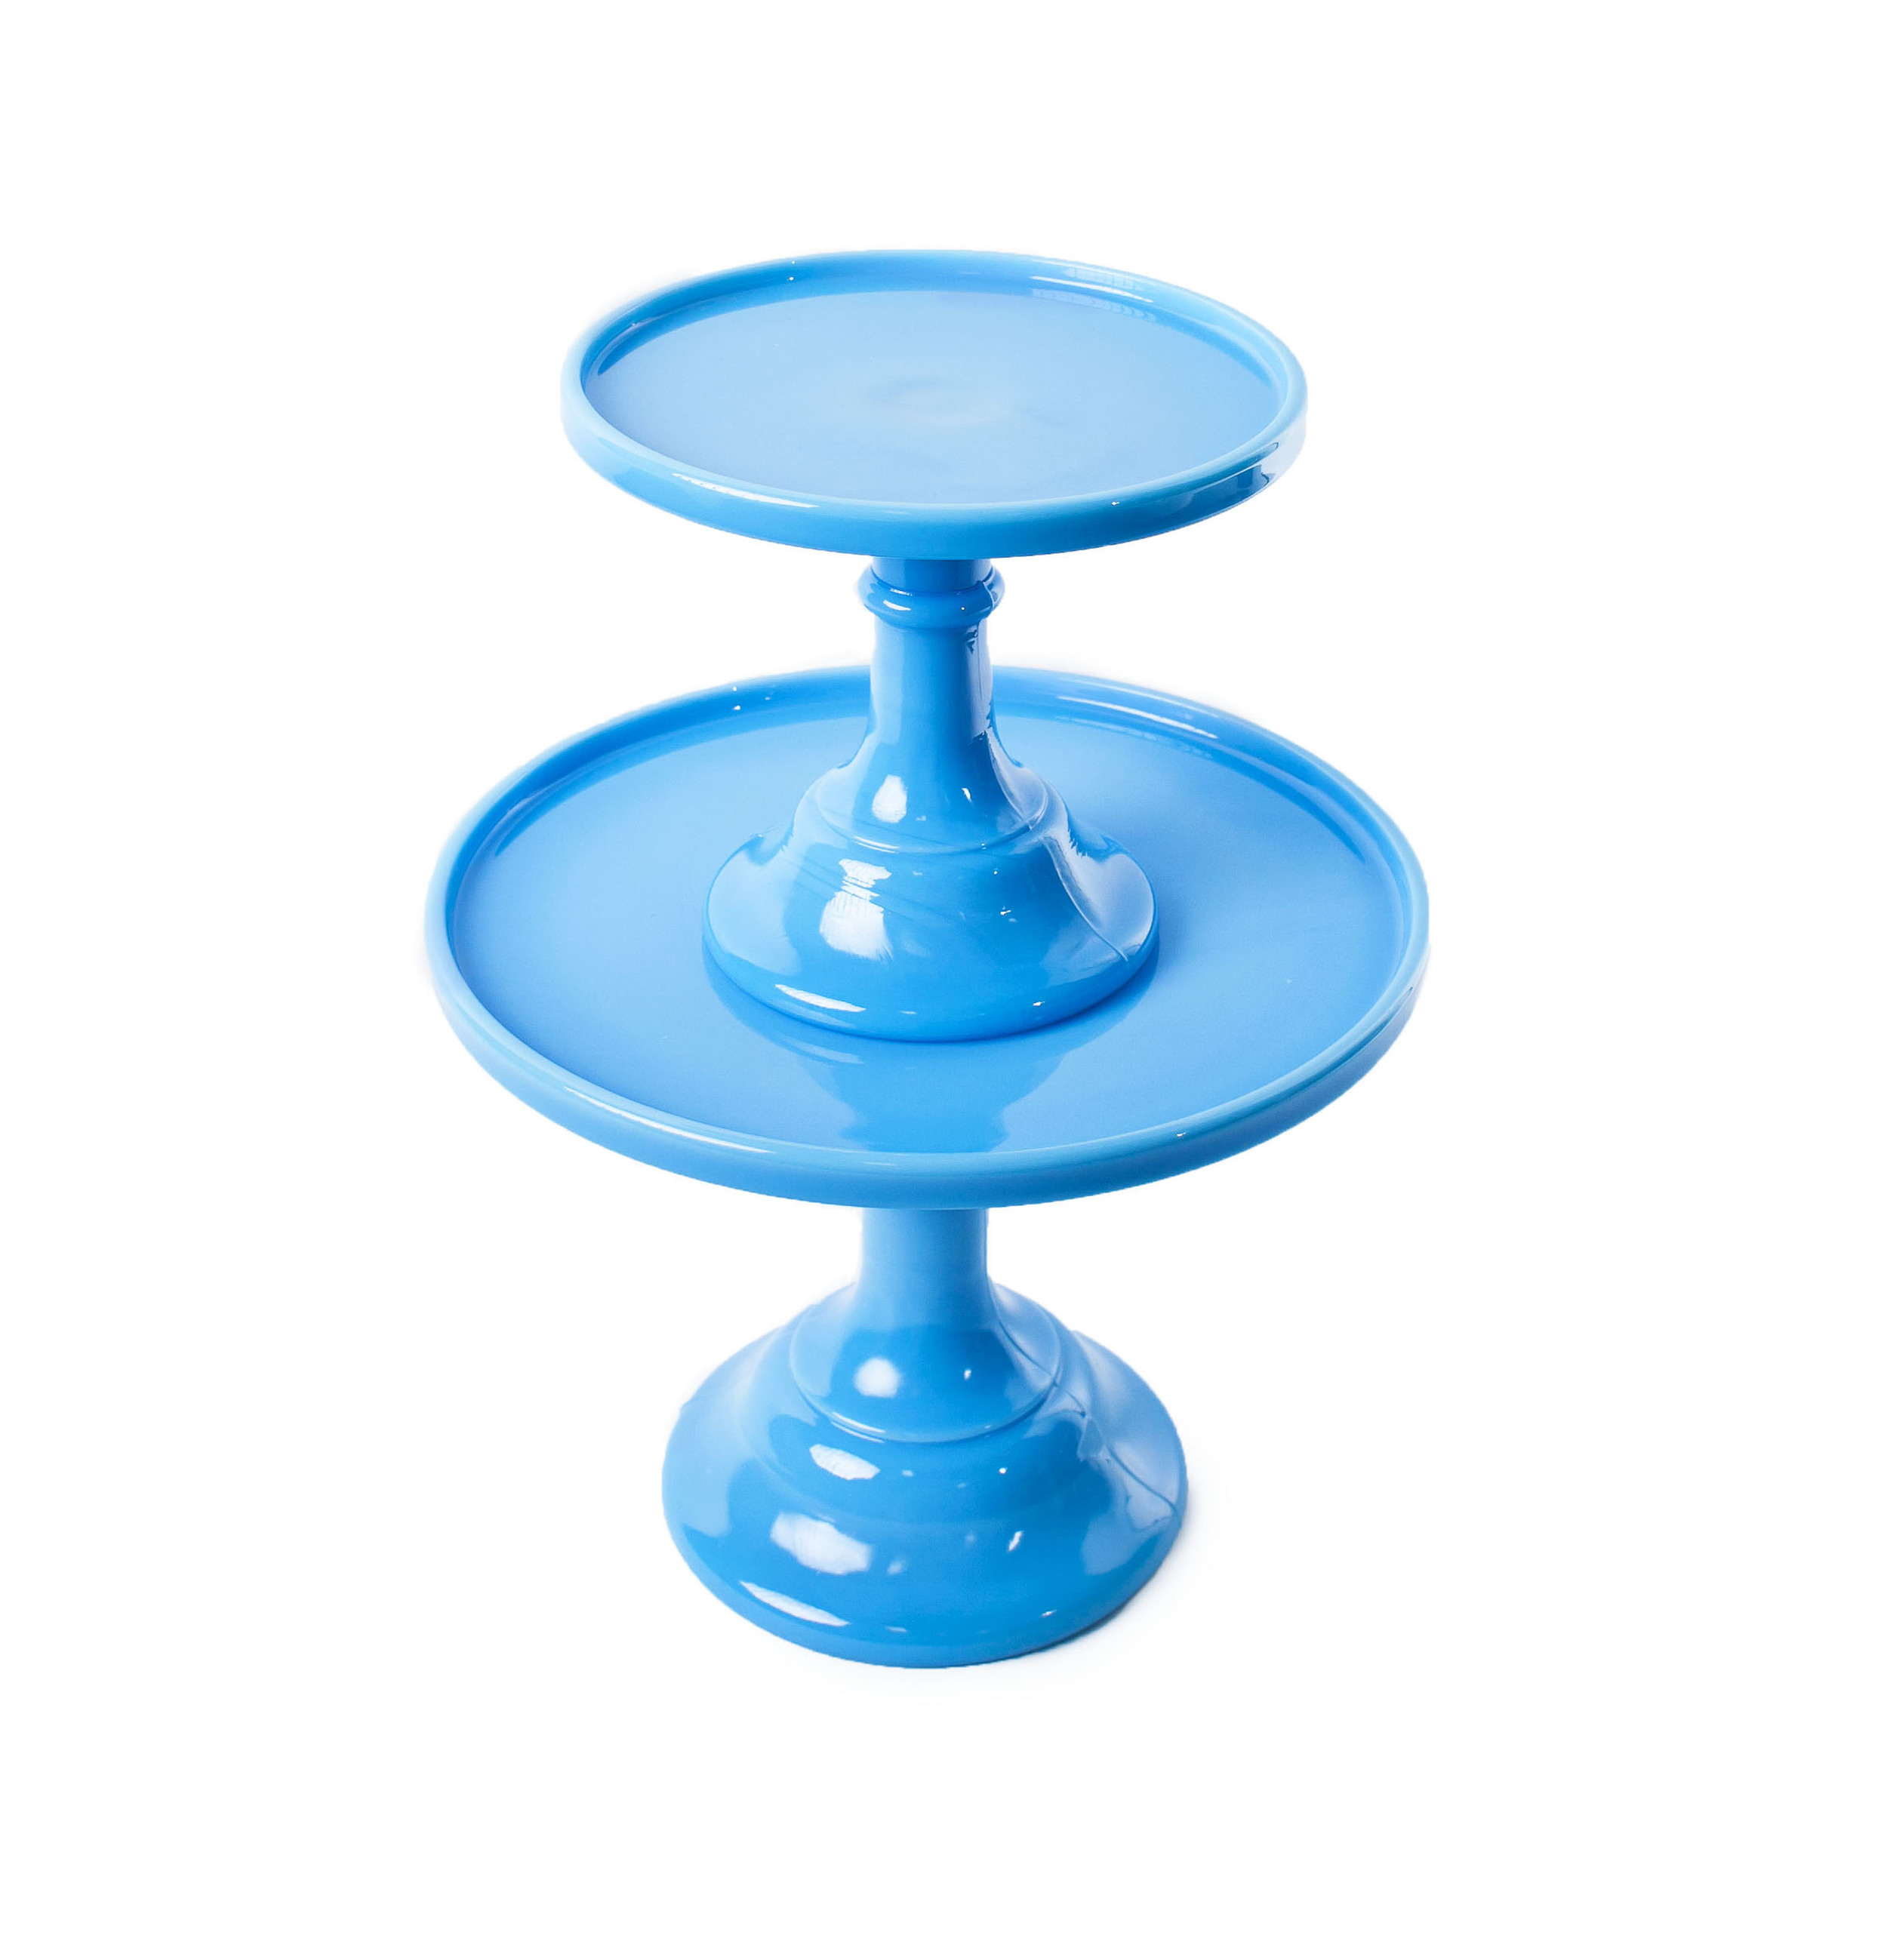 'Bonnie Blue' Cake stands (Shown Stacked)